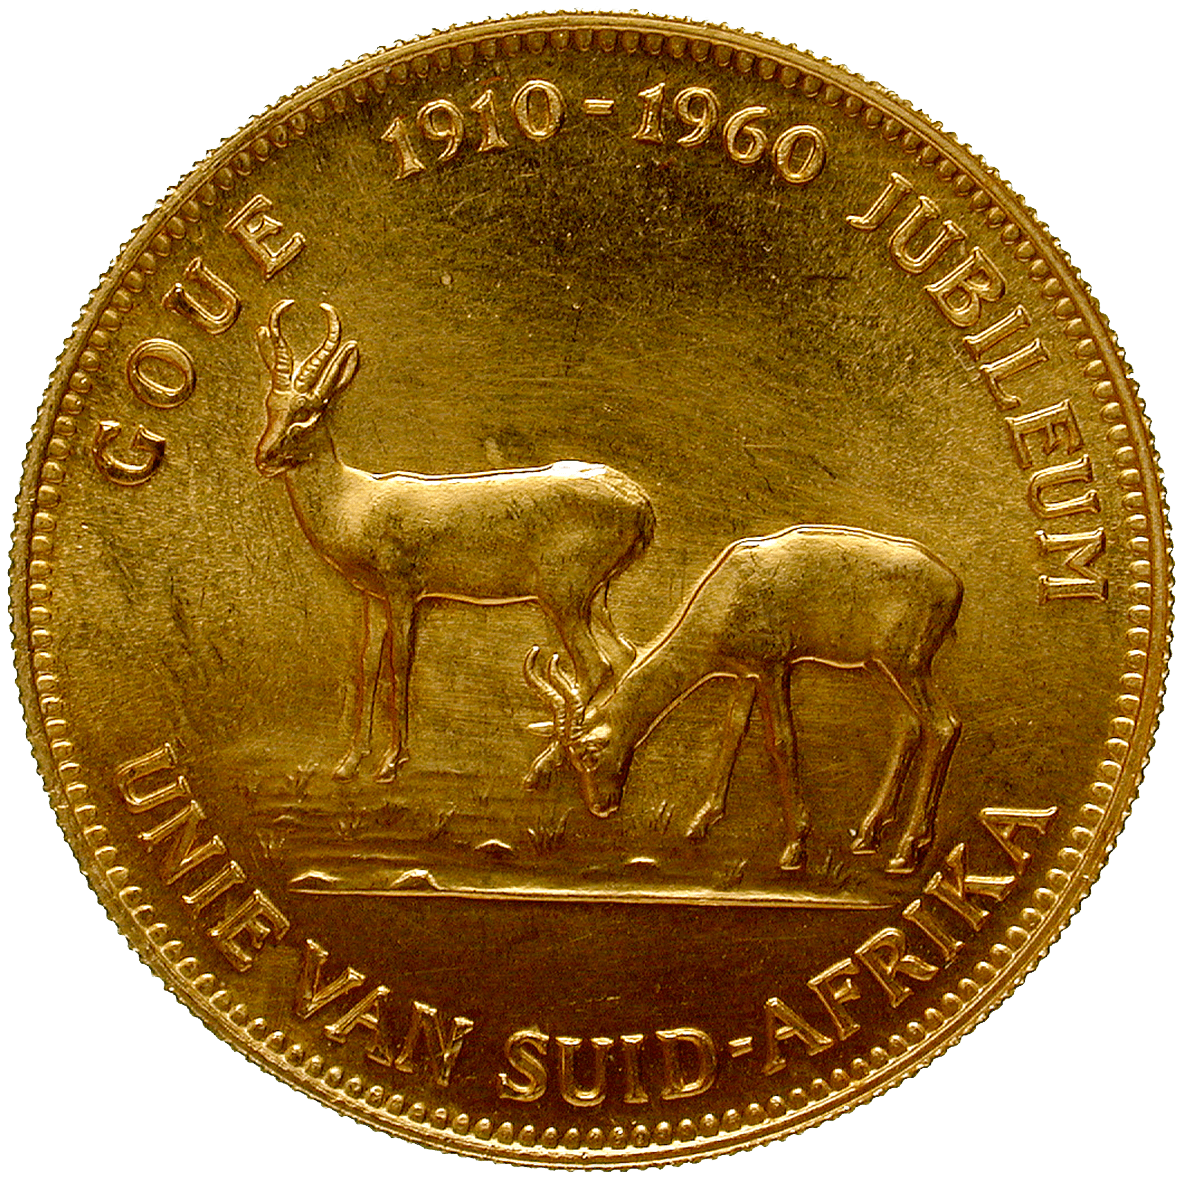 Republic of South Africa, Jubilee-Medal 1910-1960 (obverse)